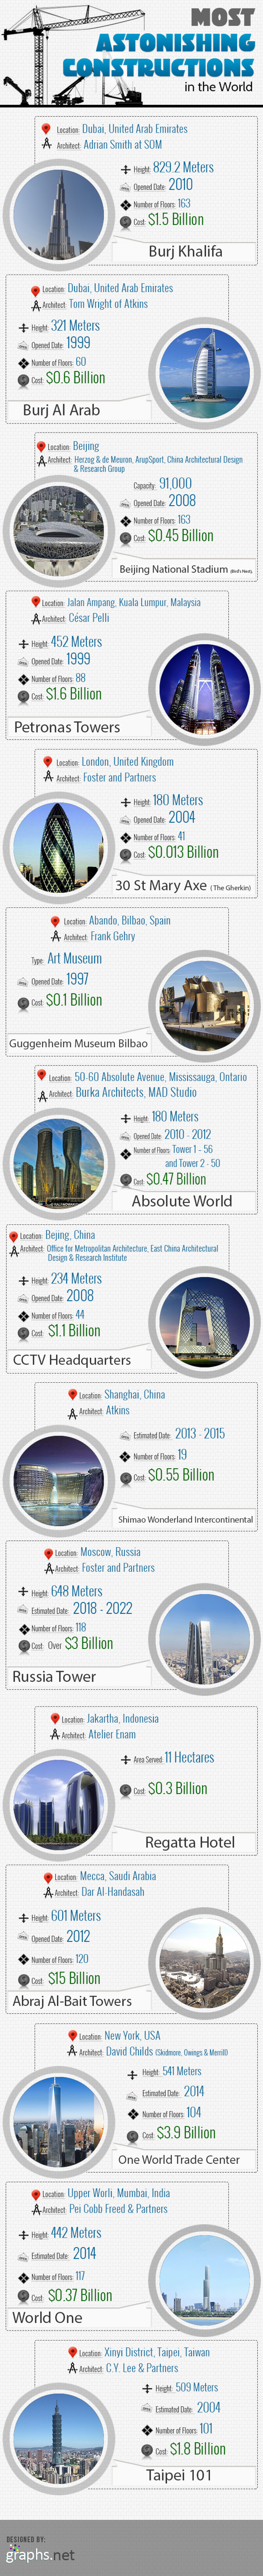 Astonishing constructions in the world. Infographic